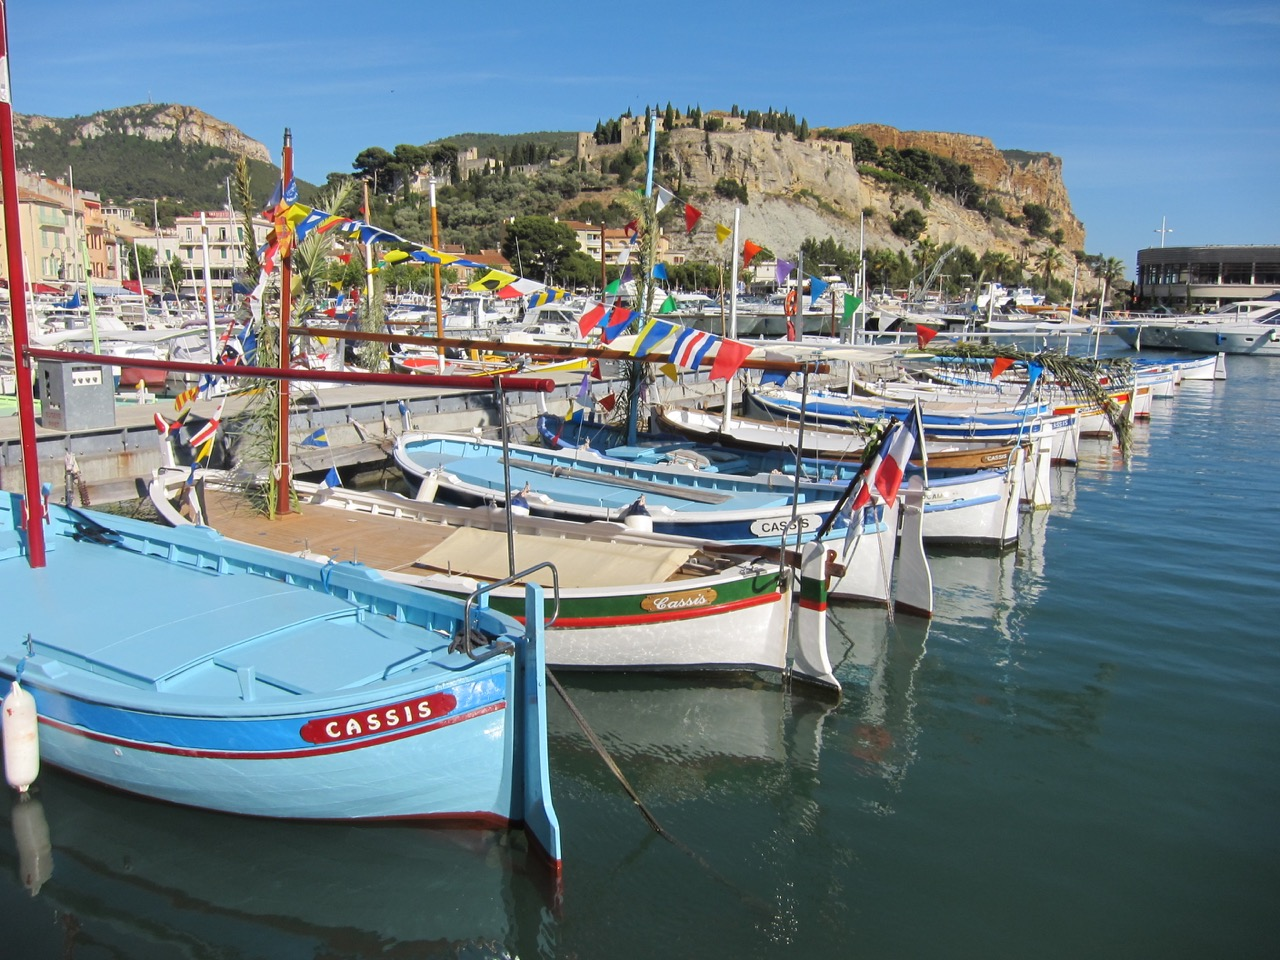 Photo of boats in Cassis harbor